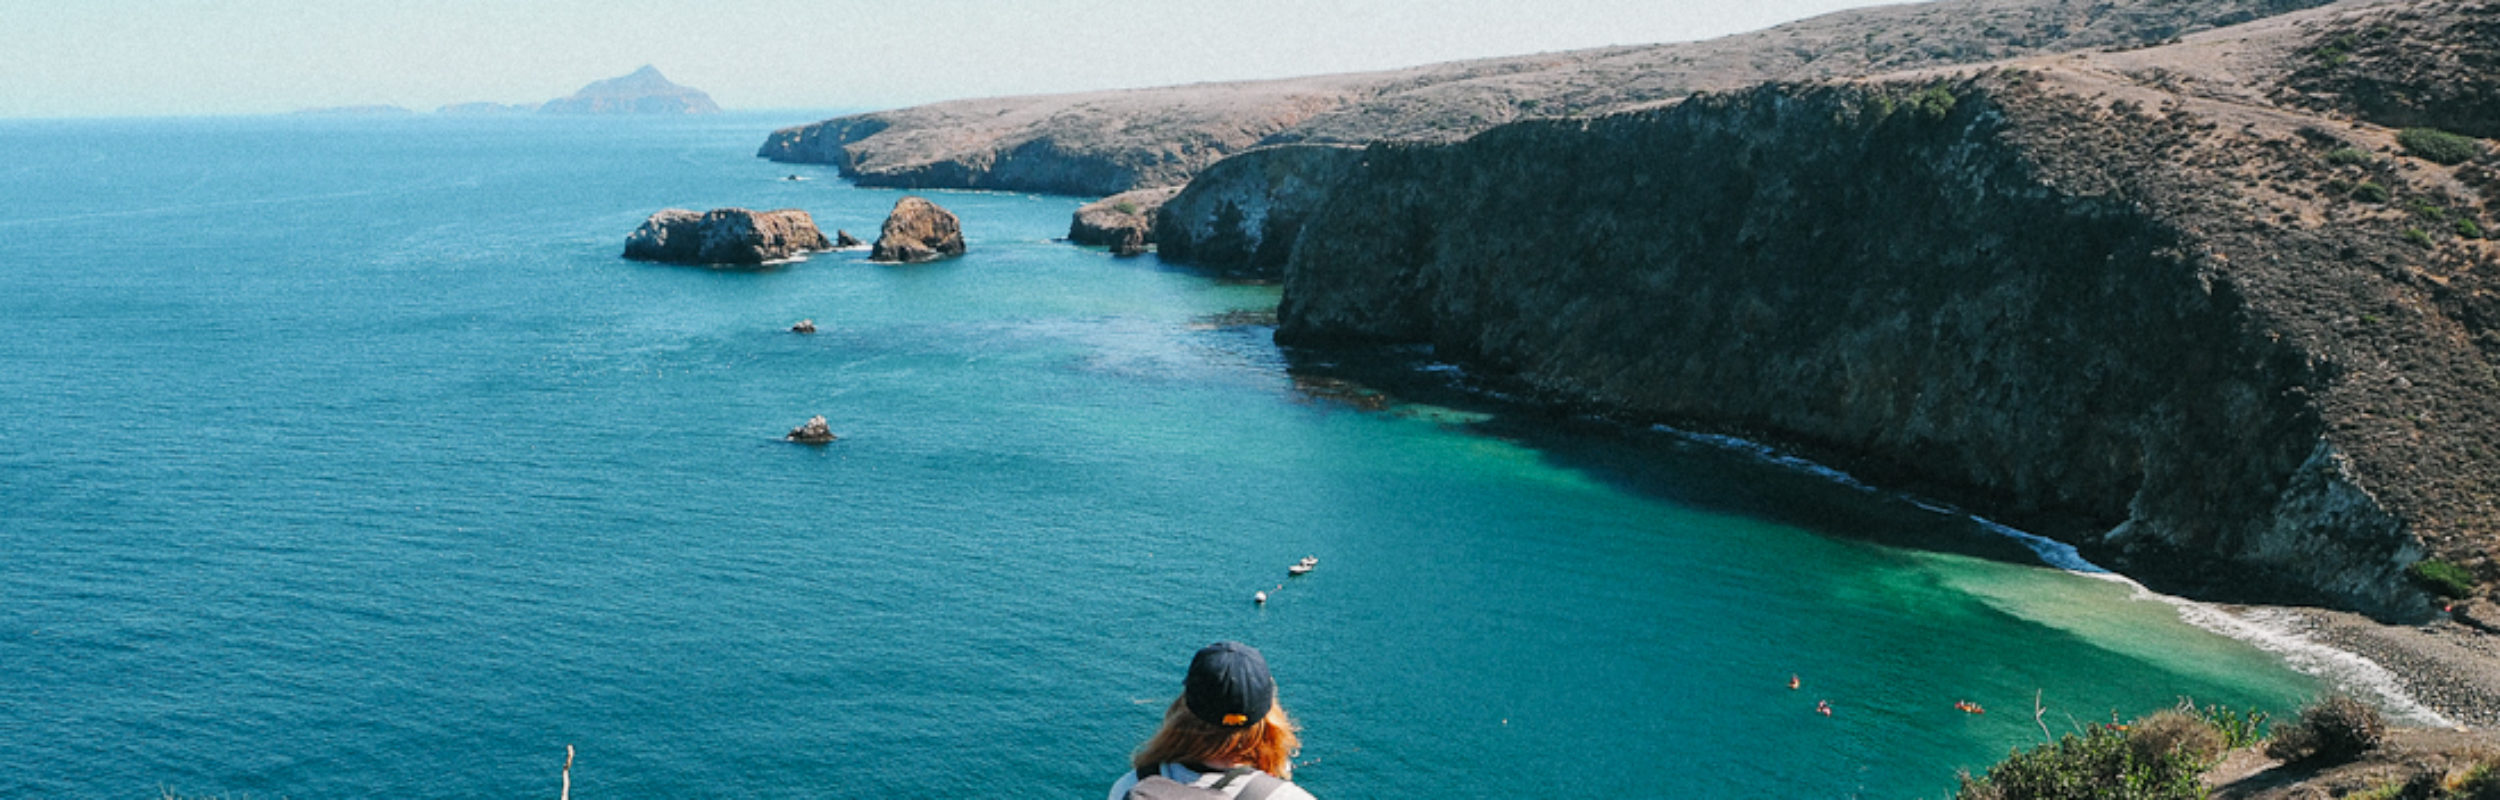 Road-trip en camping-car en Californie : de Channel Islands National Park à Morro Bay 🚐 🐳